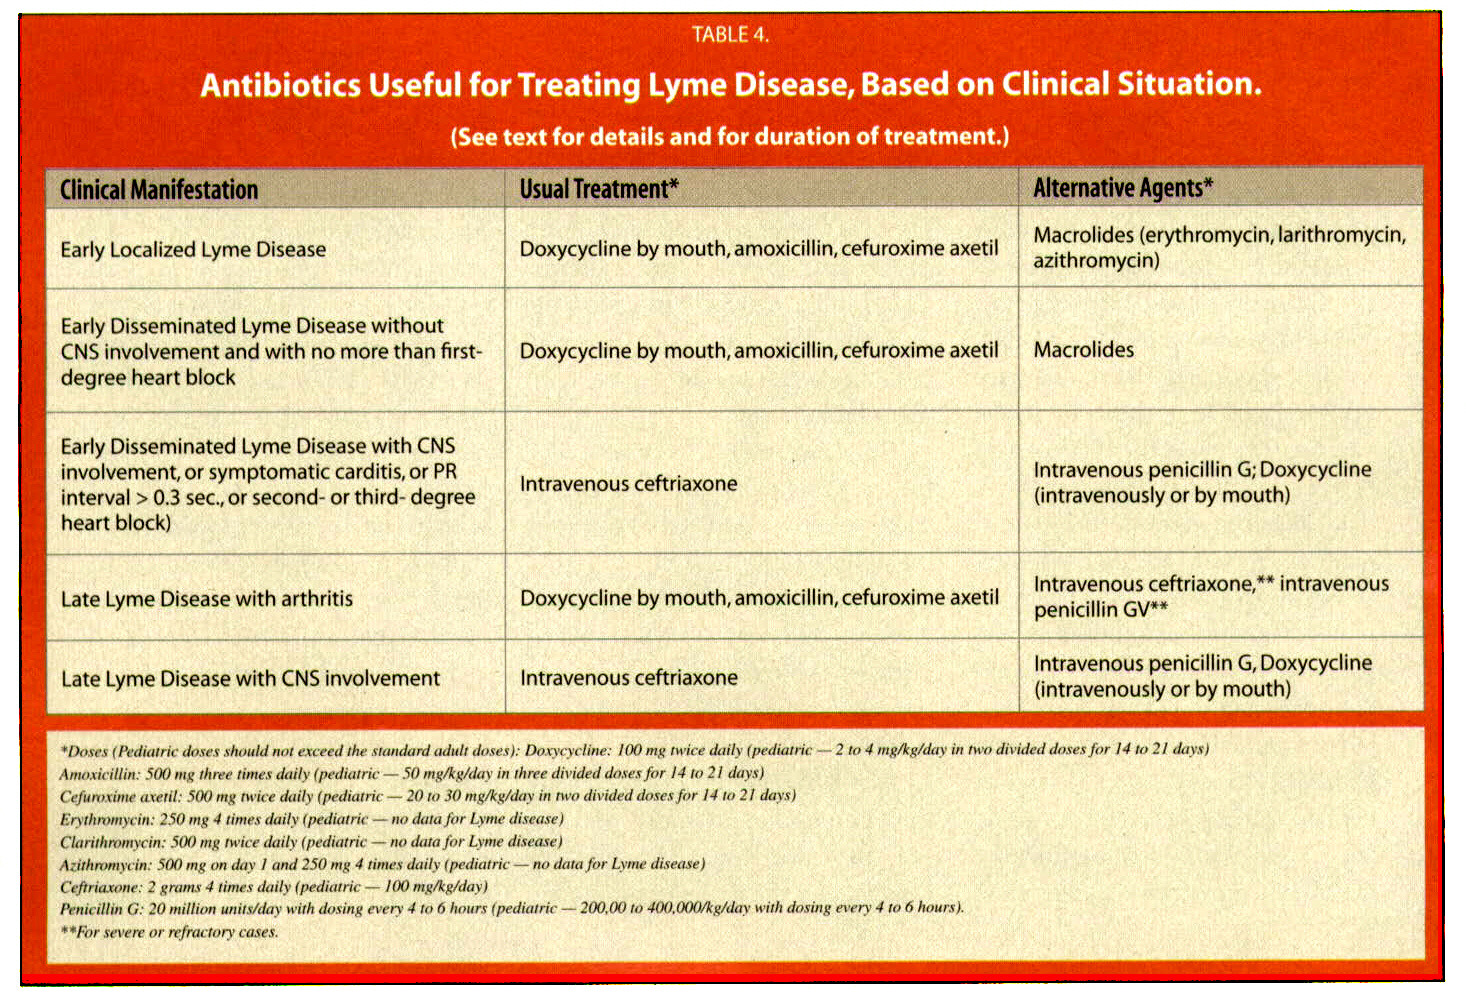 TABLE 4.Antibiotics Useful for Treating Lyme Disease, Based on Clinical Situation.